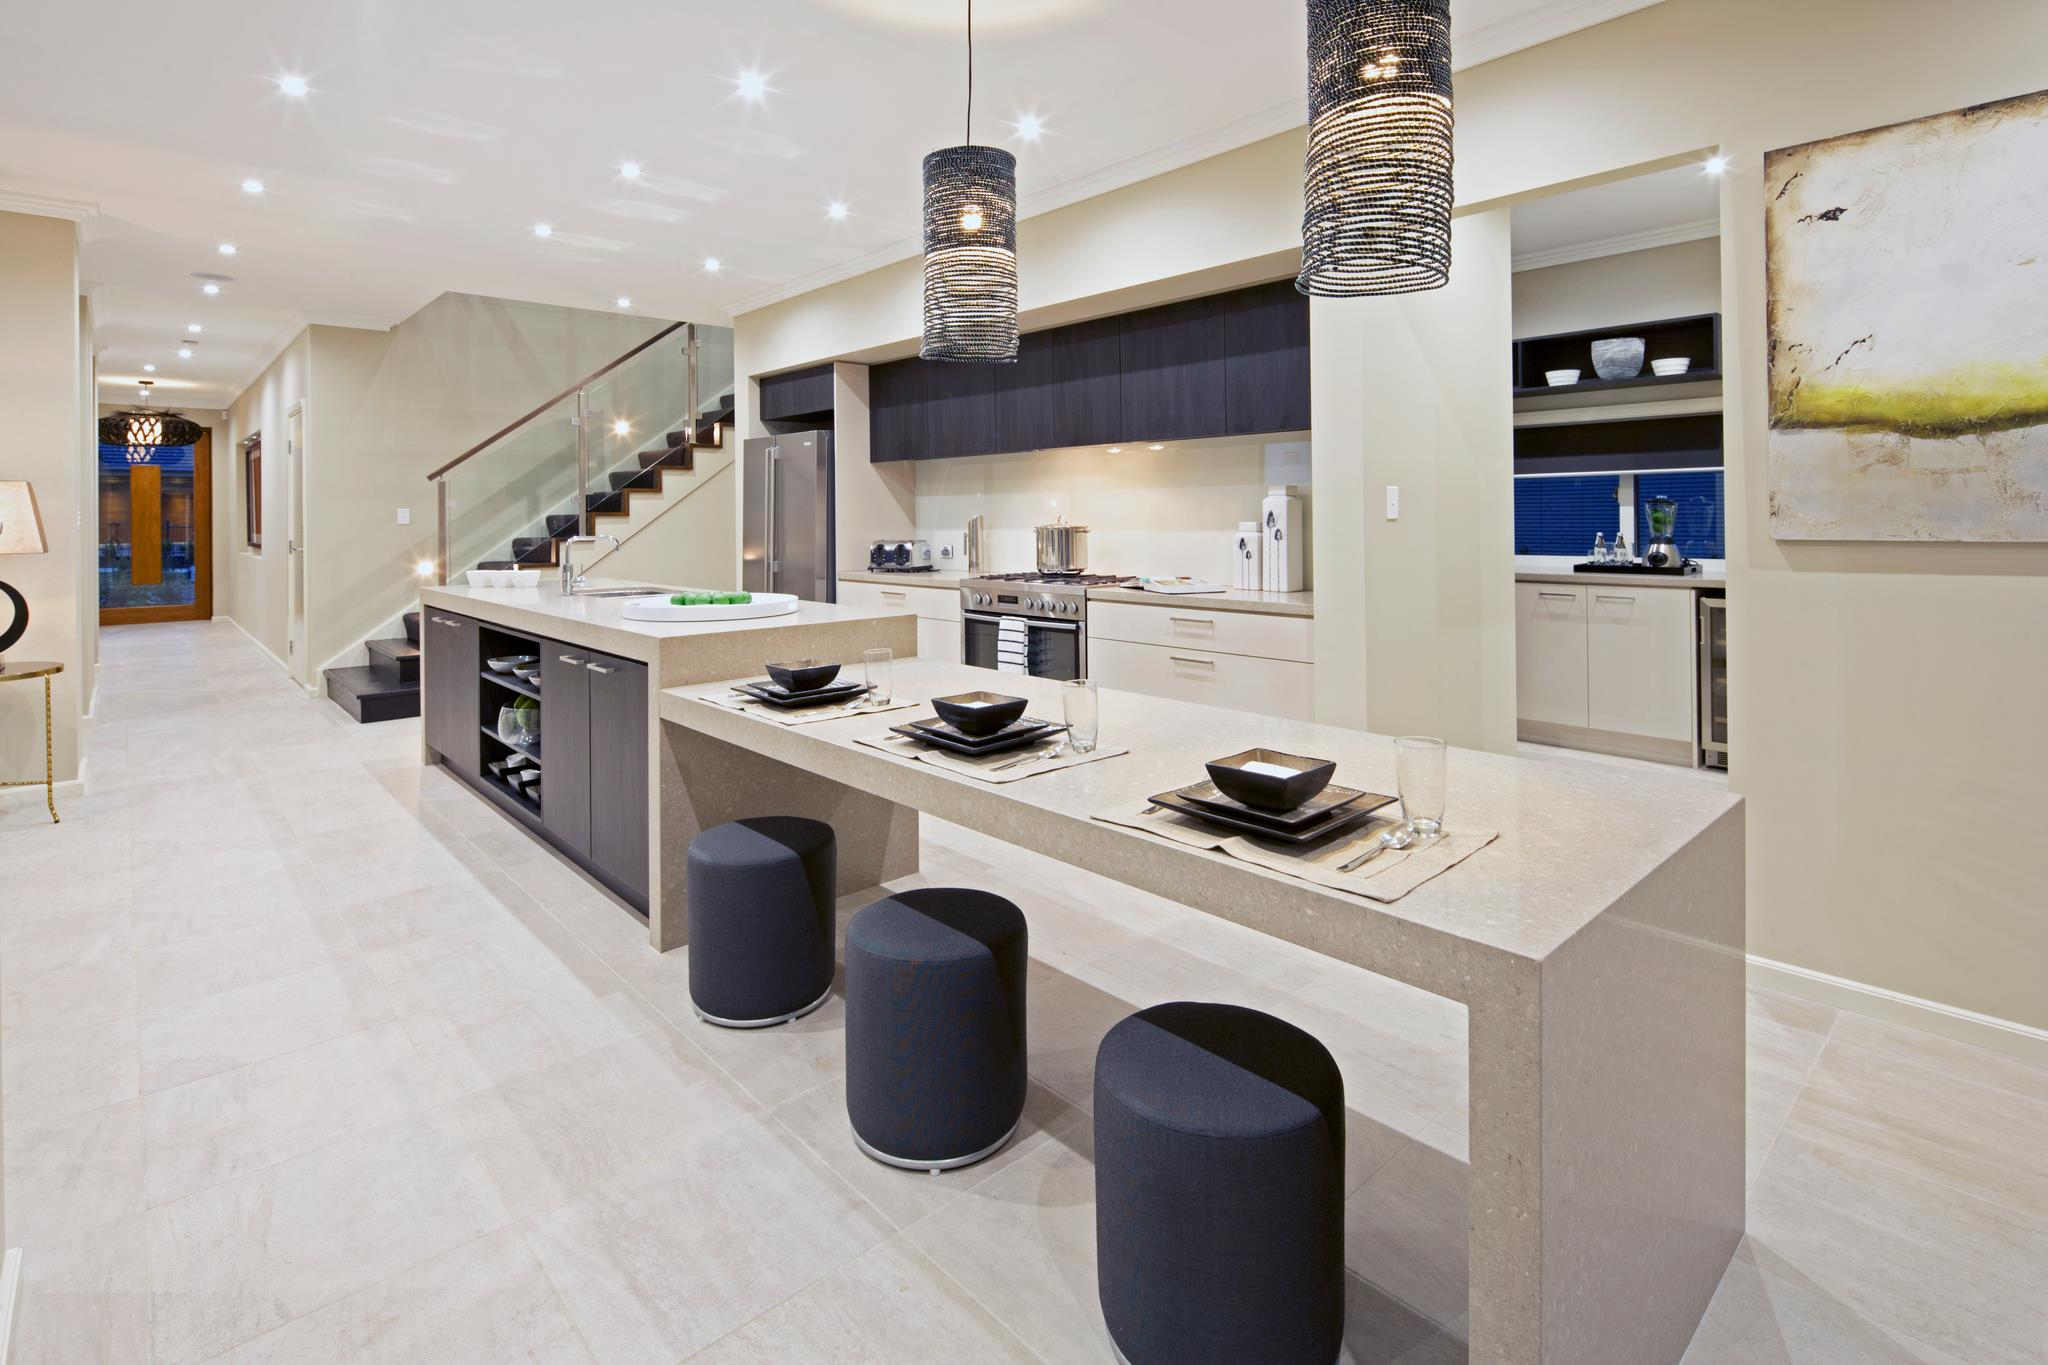 Kitchen Designs Considerations Exquisite Kitchens